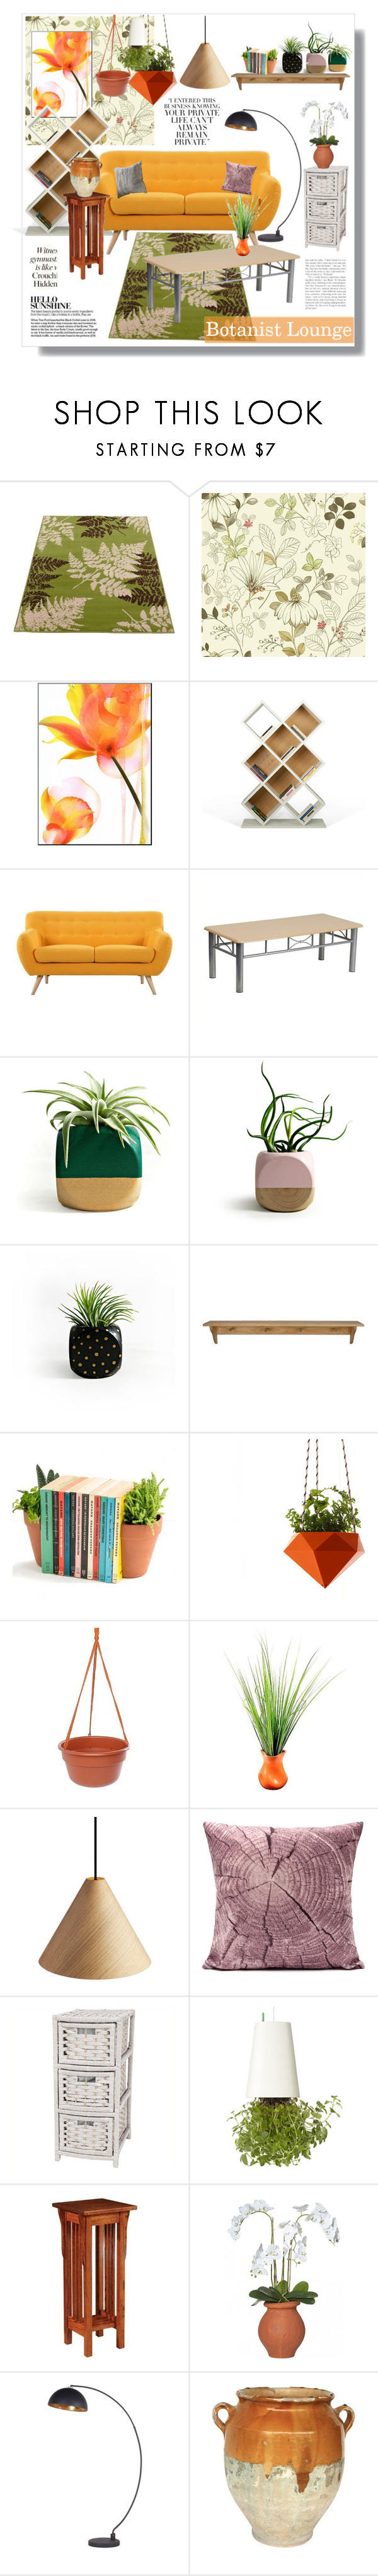 """""""Botanist Lounge"""" by artistic-biscuit ❤ liked on Polyvore featuring interior, interiors, interior design, home, home decor, interior decorating, TemaHome, Madison, Flash Furniture and Bloem"""